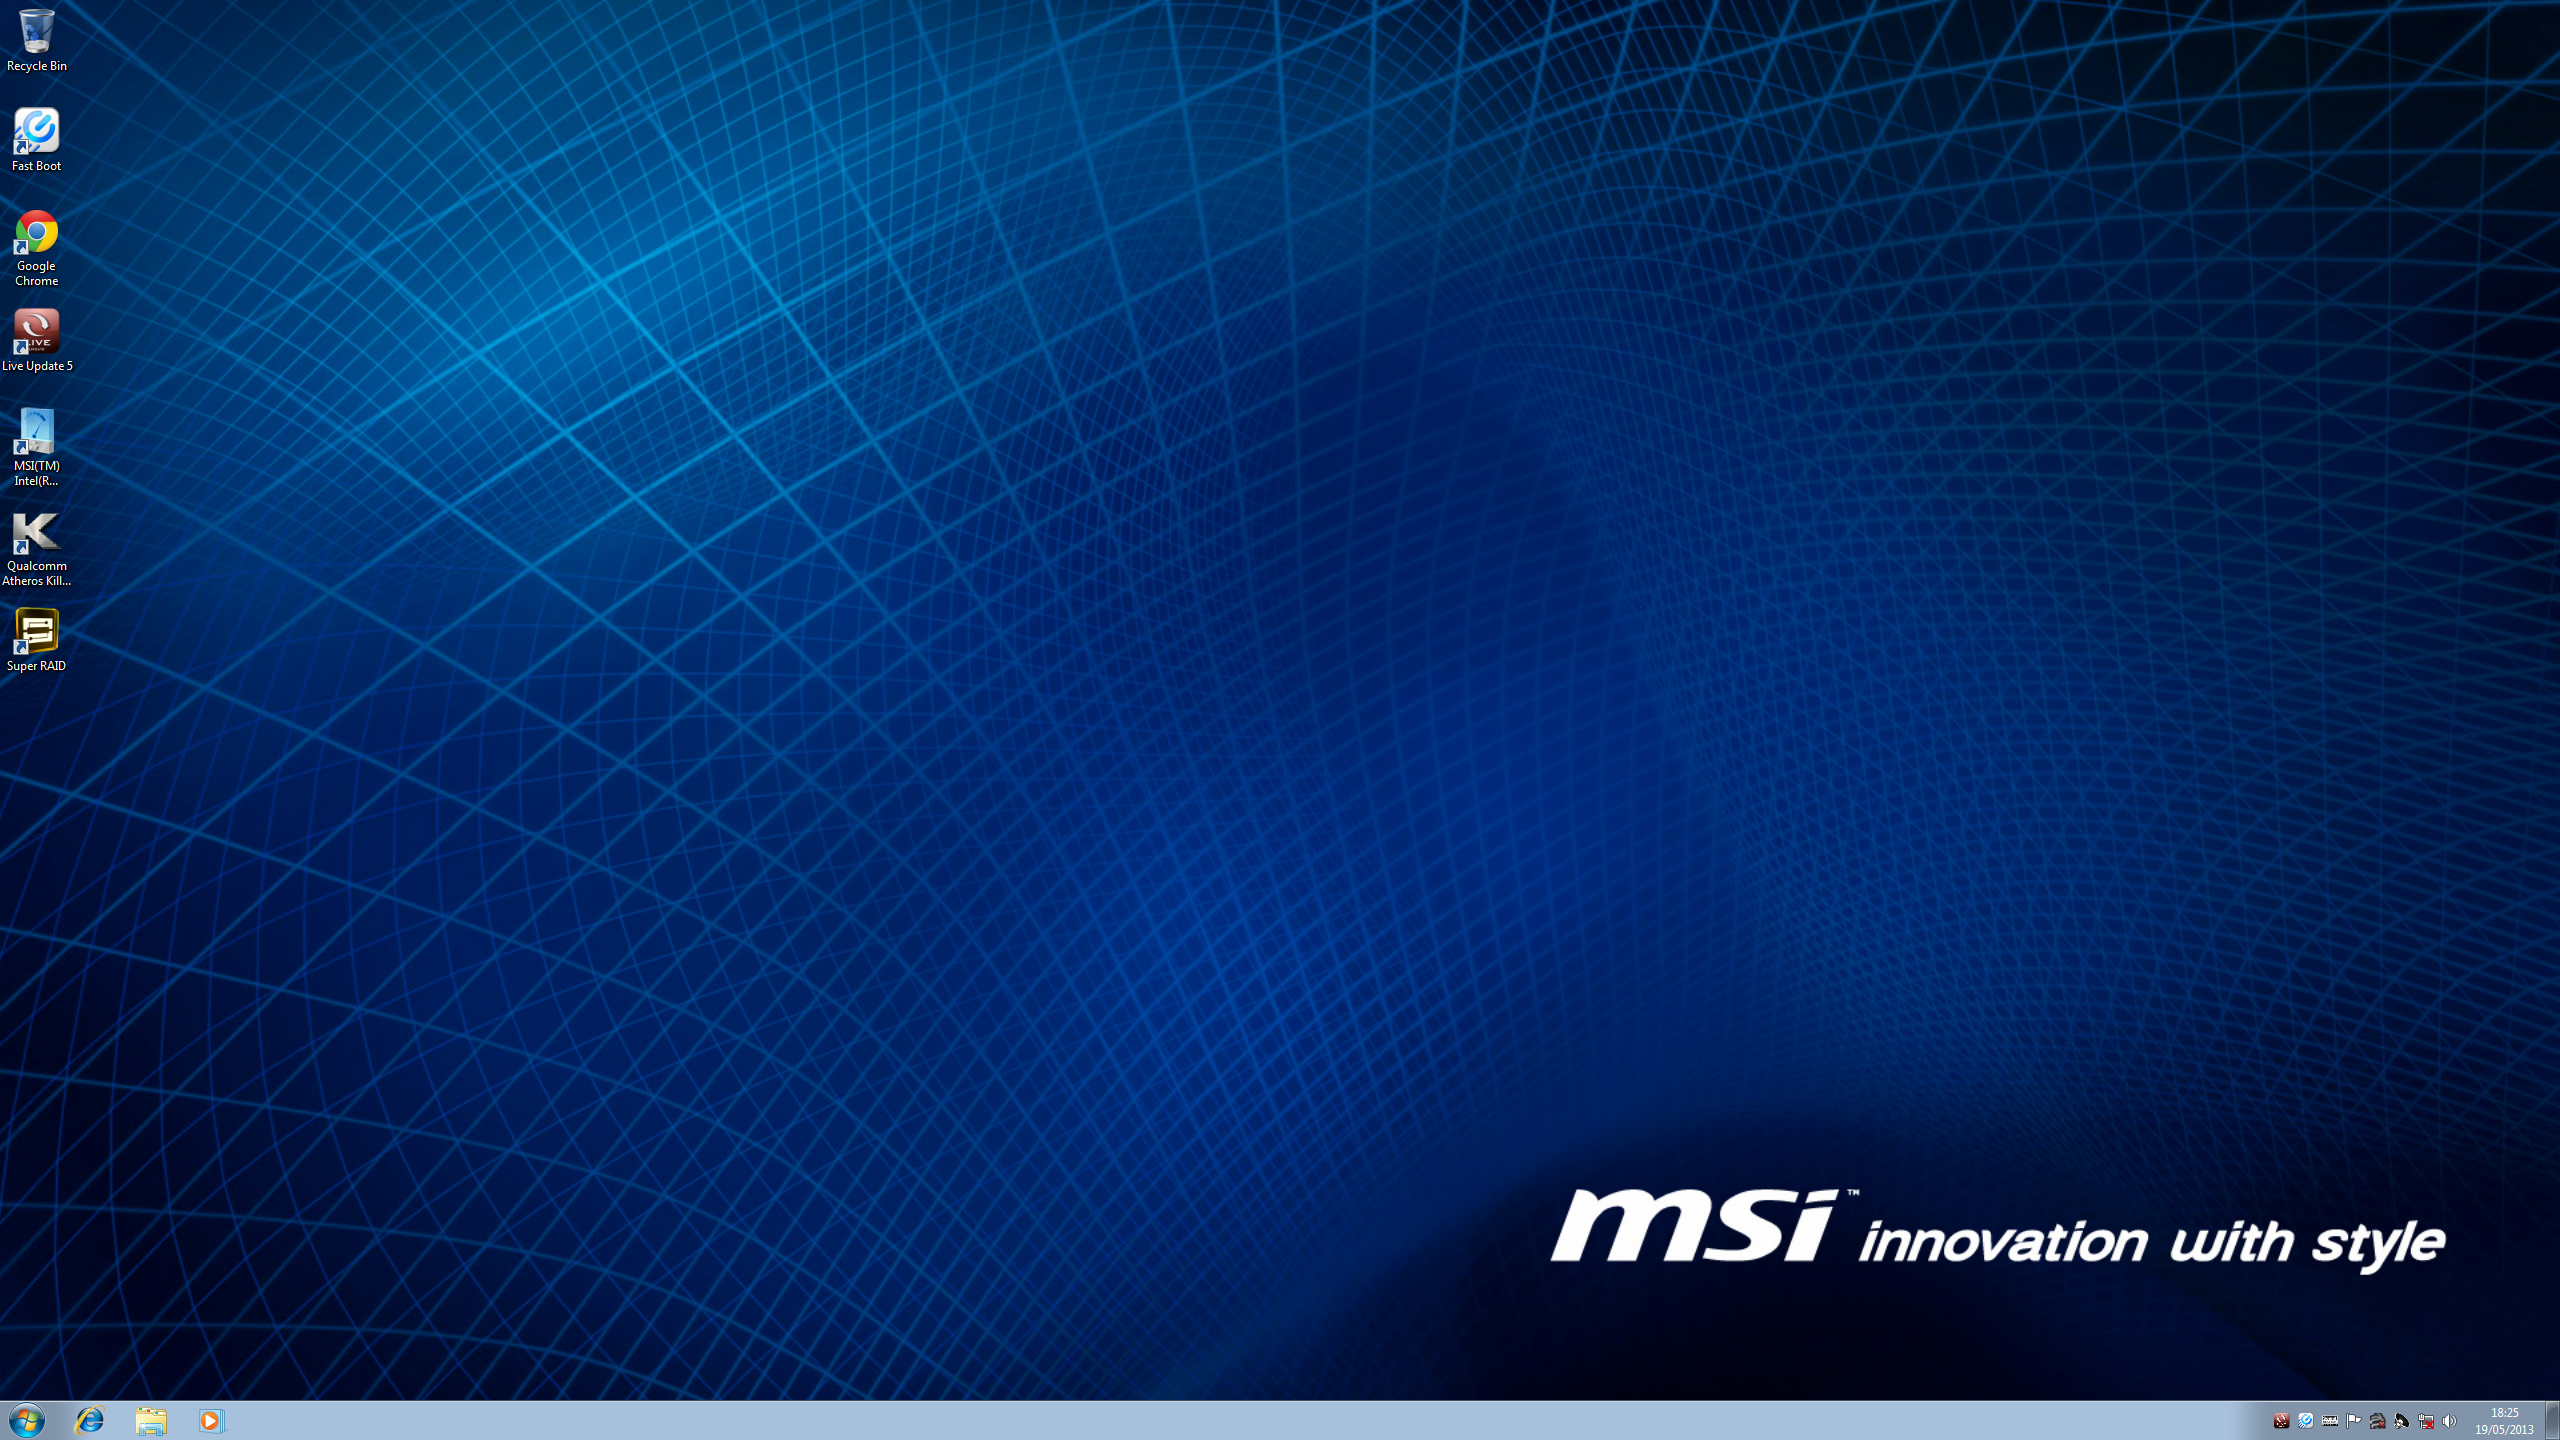 MSI Z87 GD65 Gaming Software   Intel Z87 Motherboard Review with 2560x1440